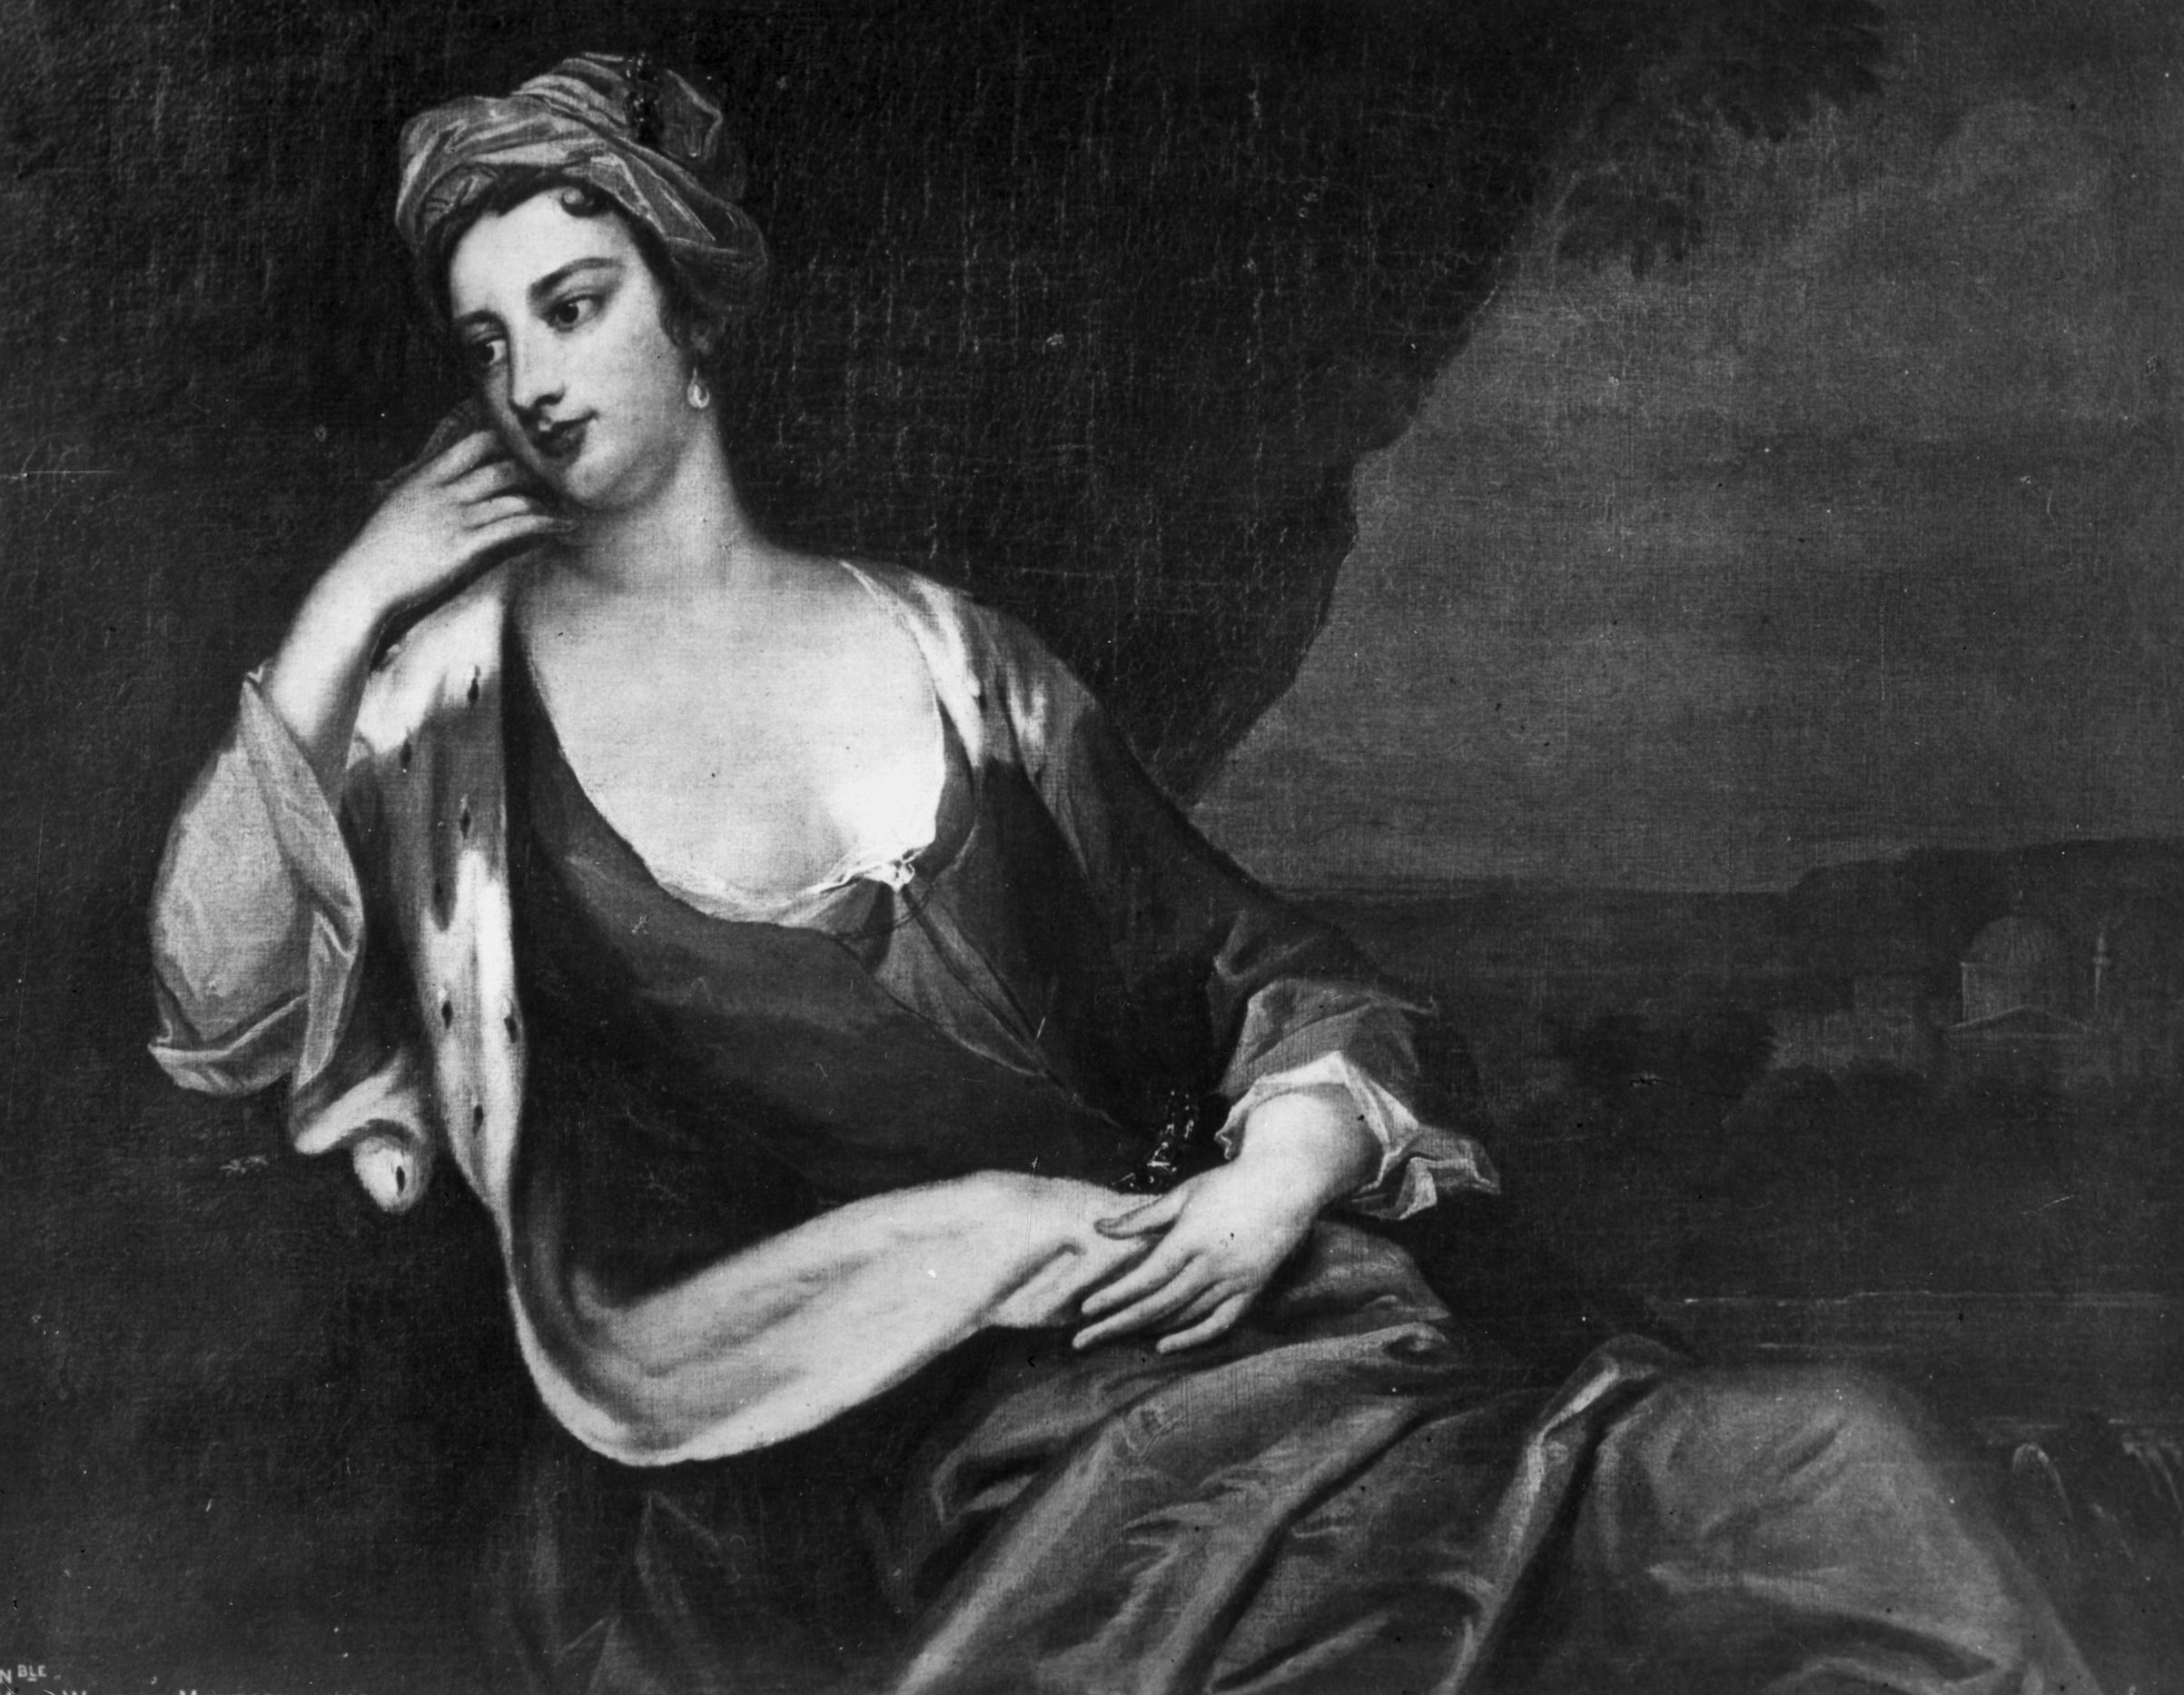 British writer and explorer Lady Mary Wortley Montagu (1689 - 1762). Portrait by Sir Godfrey Kneller, 1720.